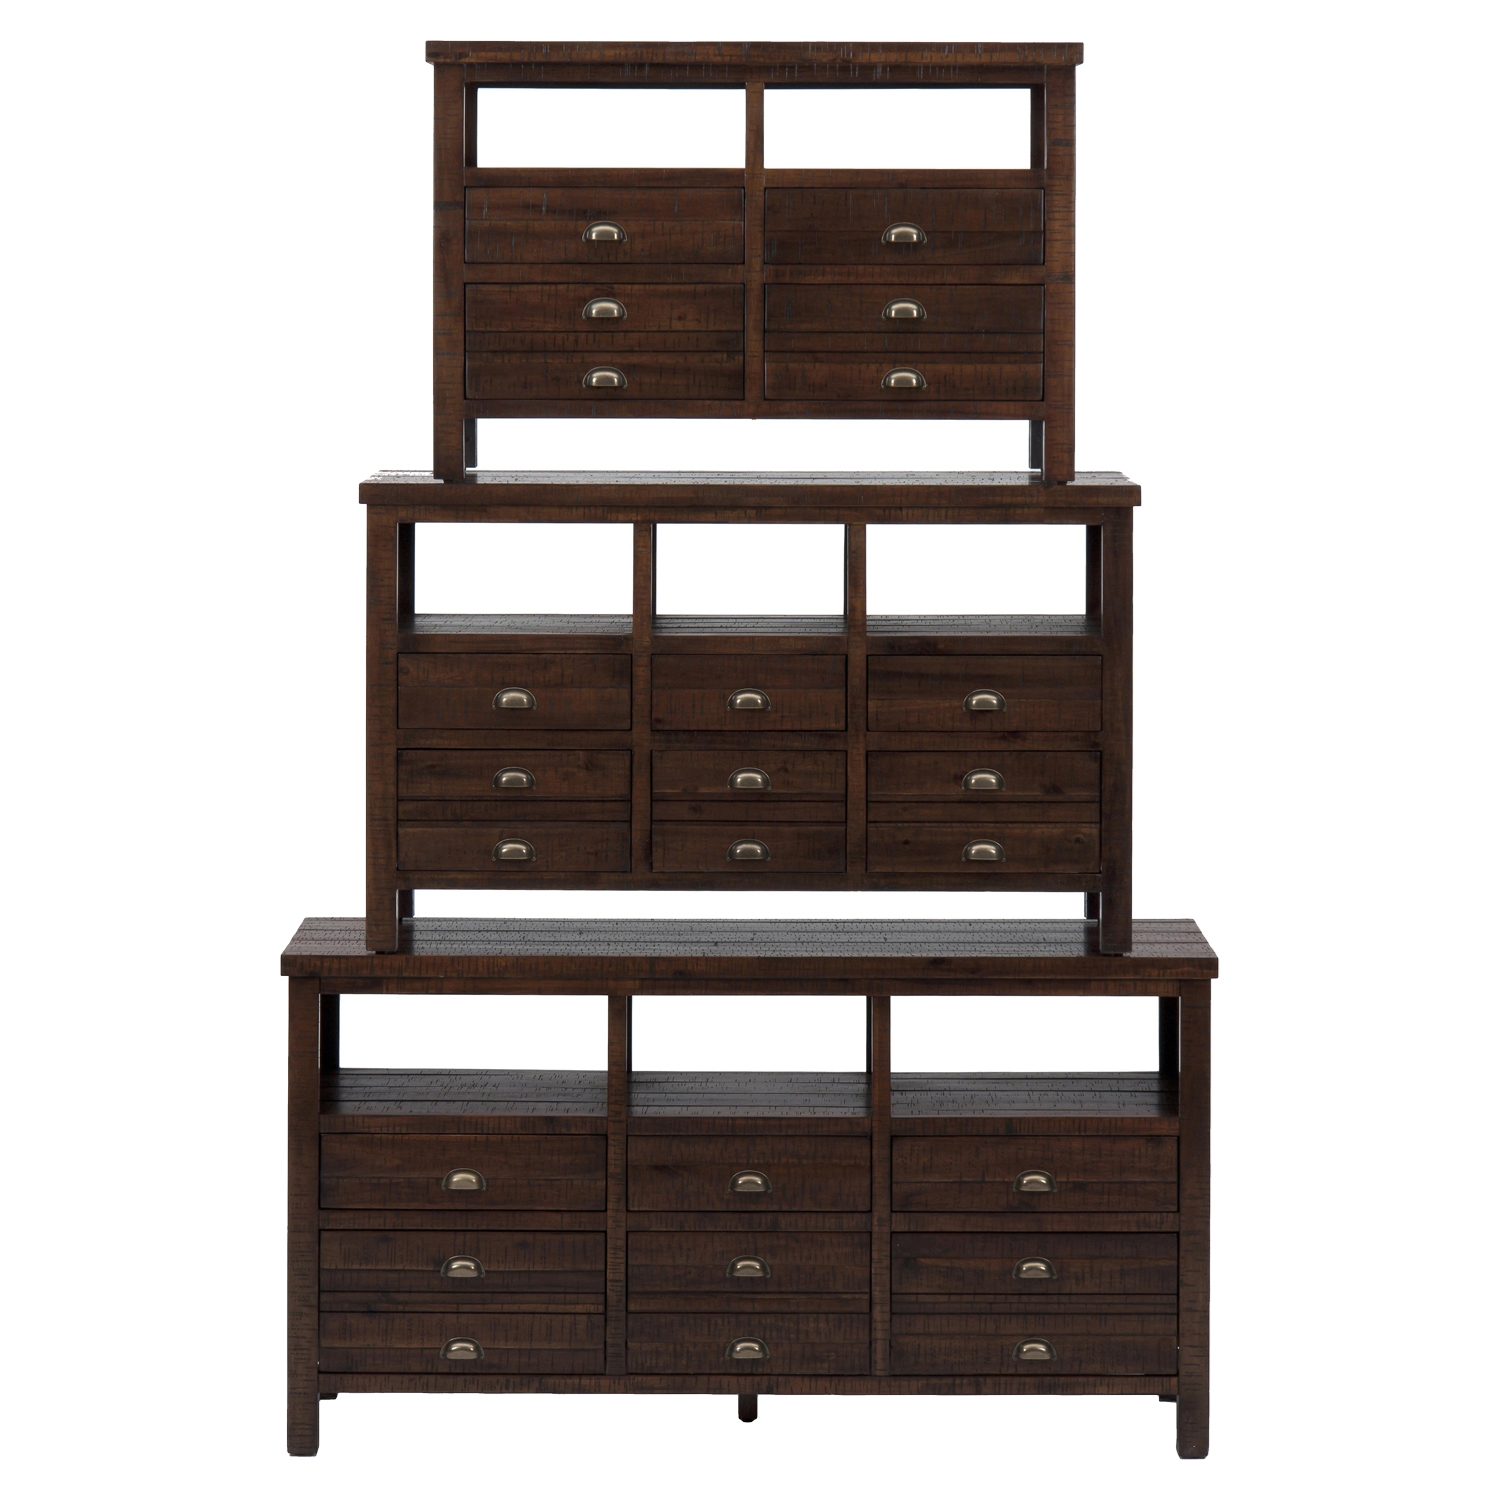 "Urban Lodge 42"" Media Unit - Brown - JOFR-087-42"